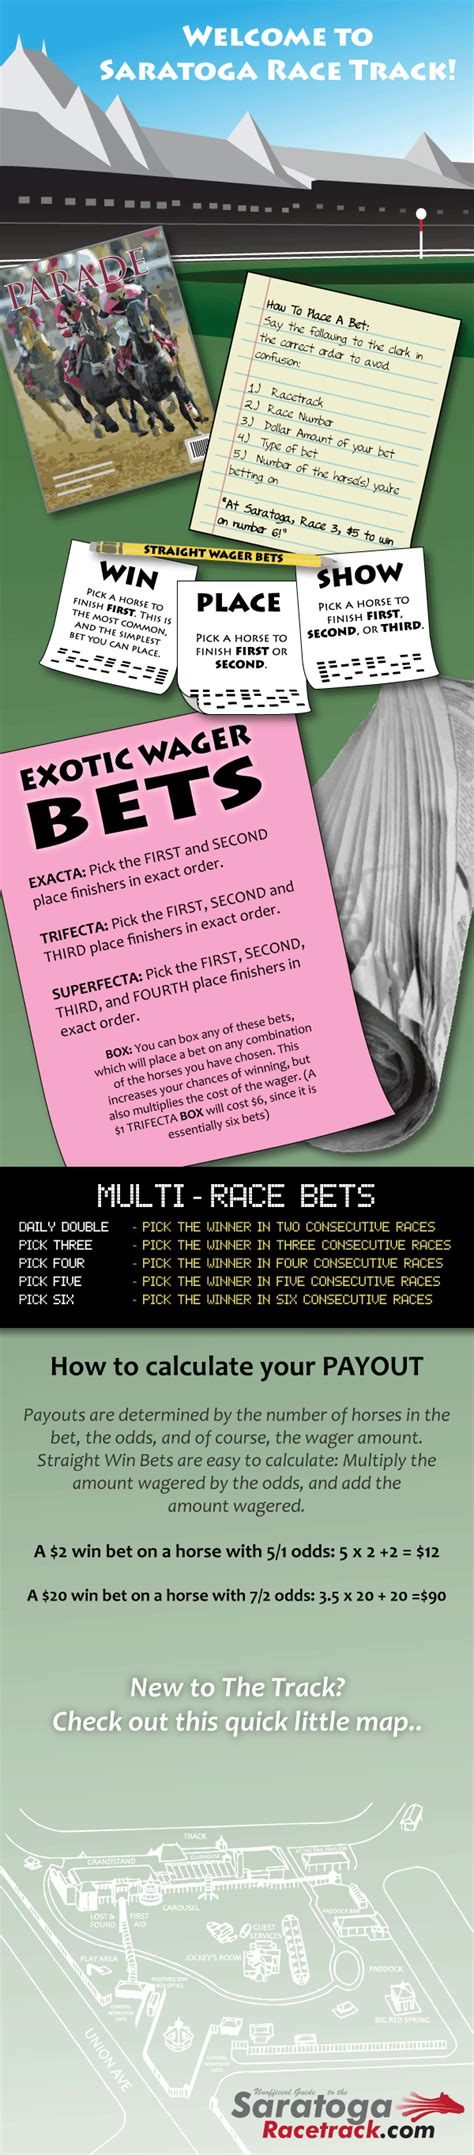 Horse Betting Basics: How To Bet At The Racetrack Infographic.